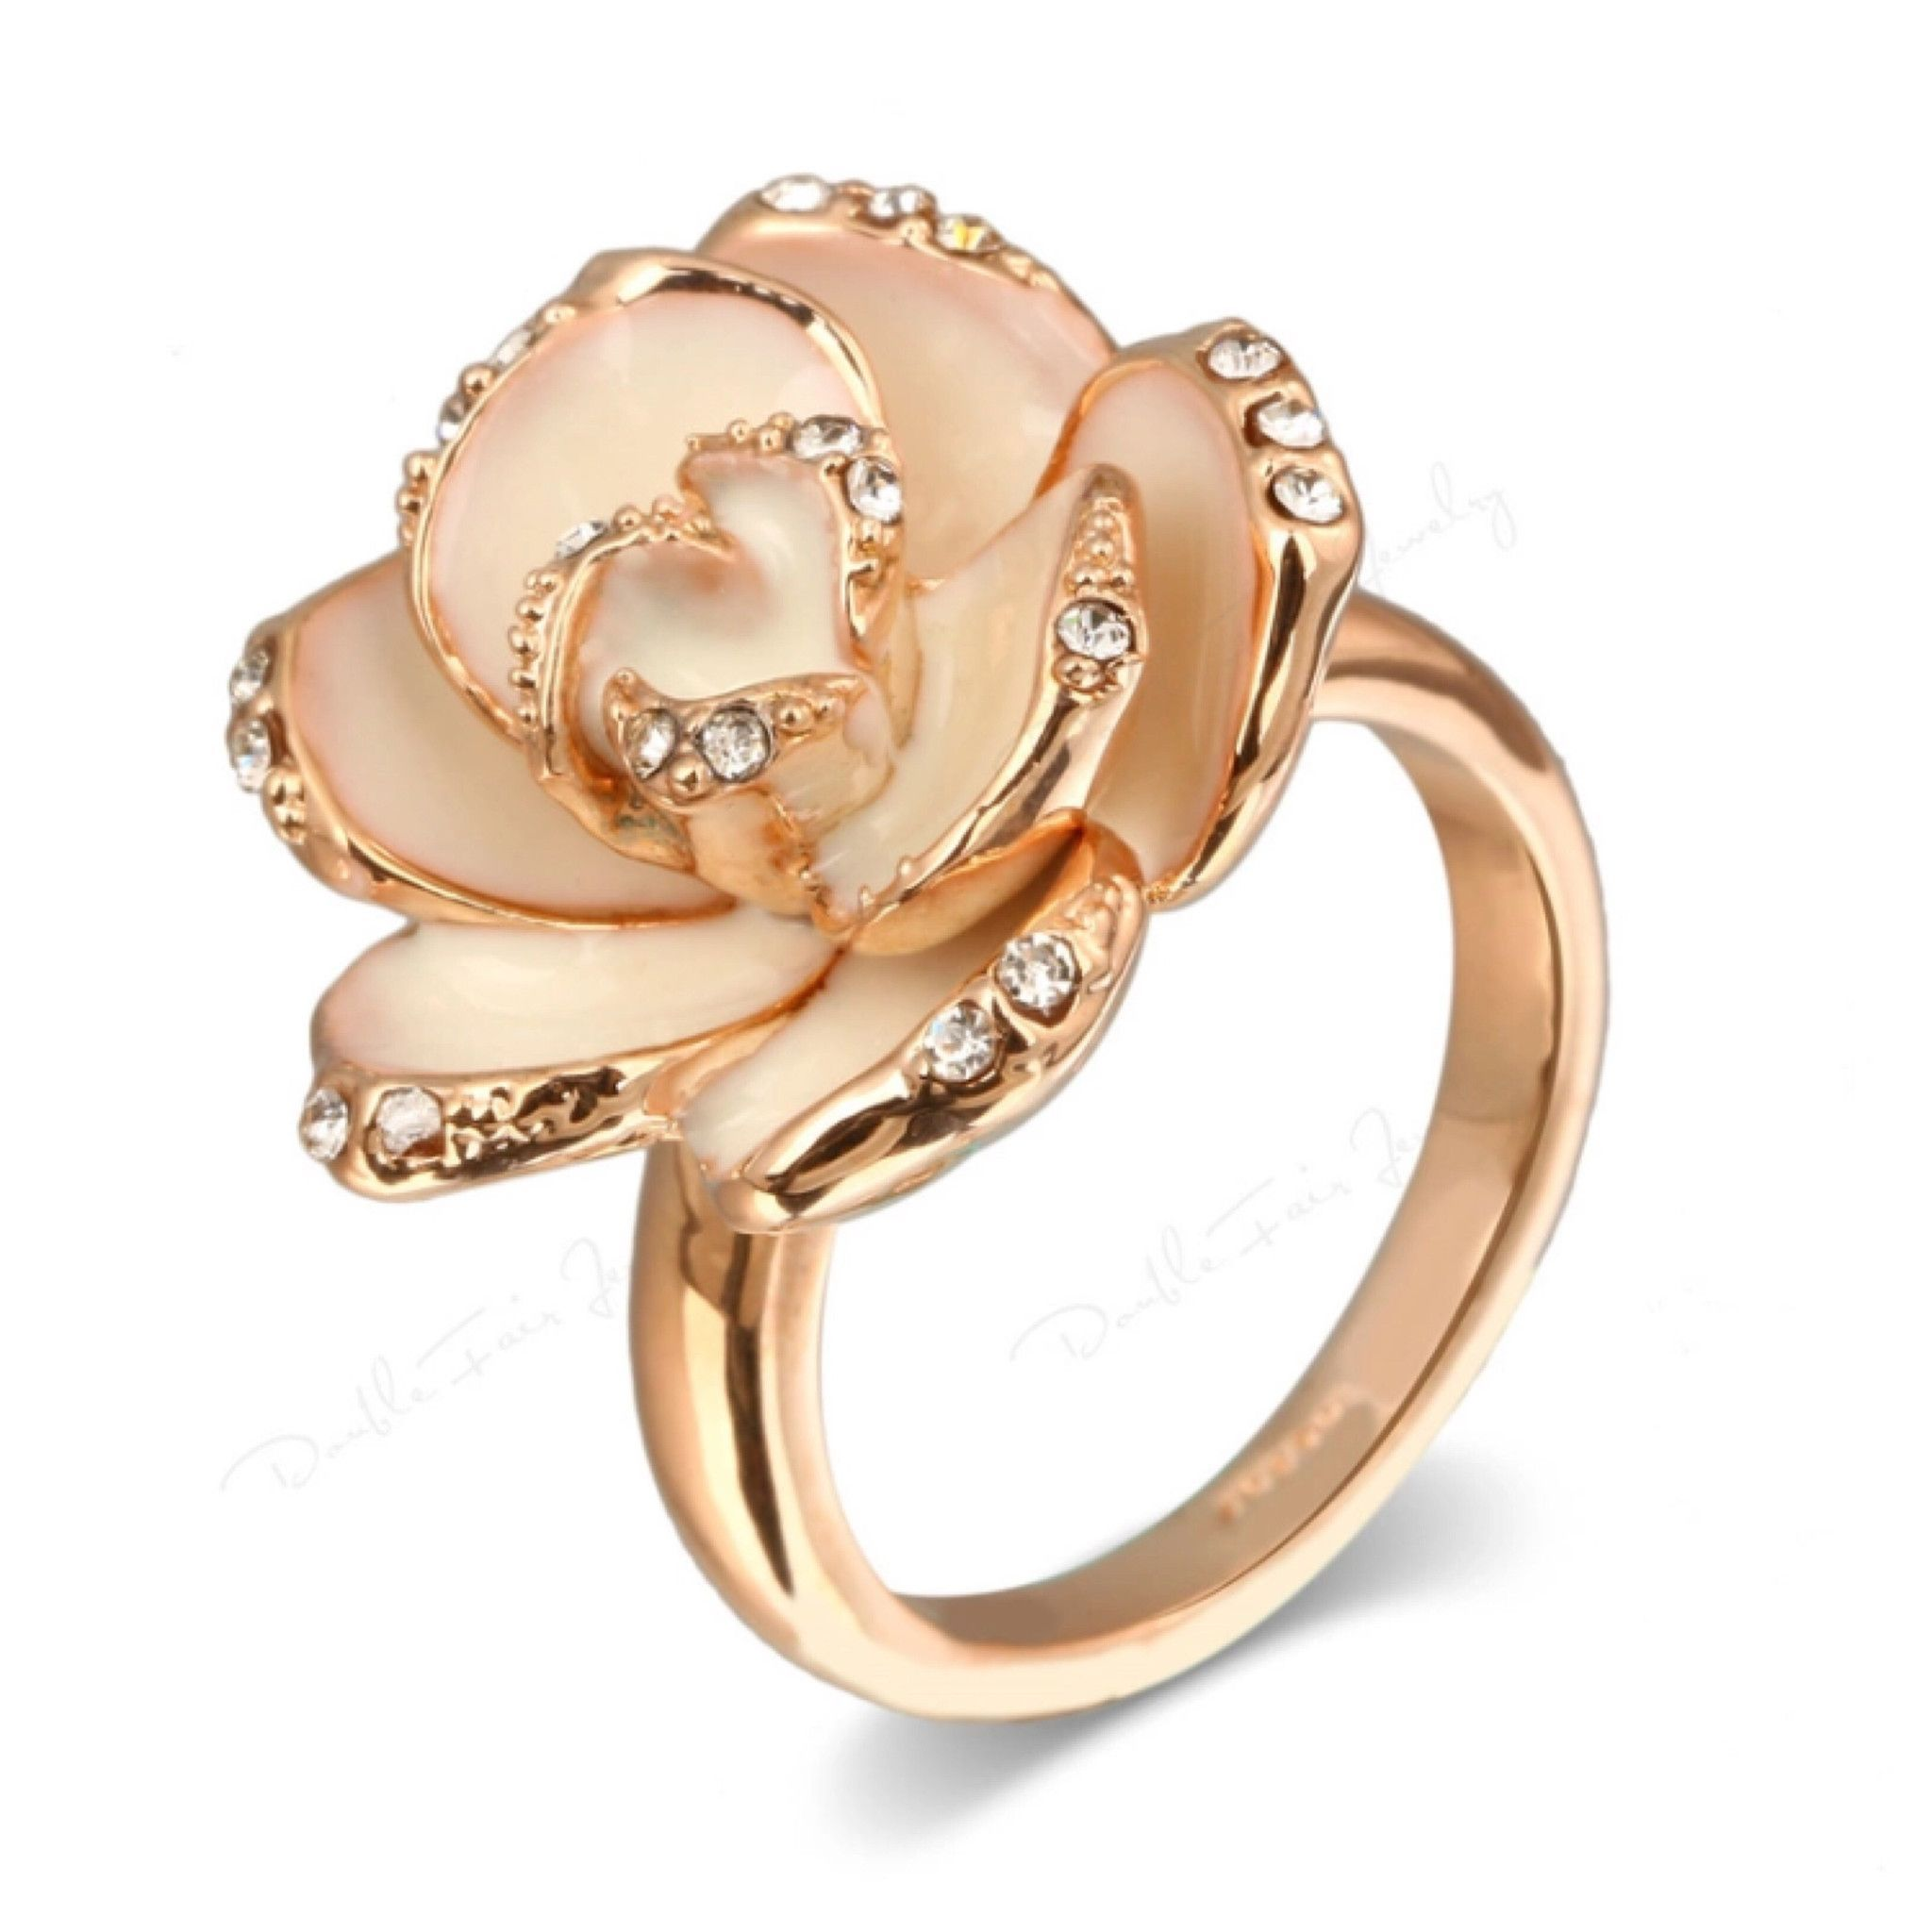 engagement dp moissanite band rings princess tone set gold matching floral amazon ring camellia cut handmade with com